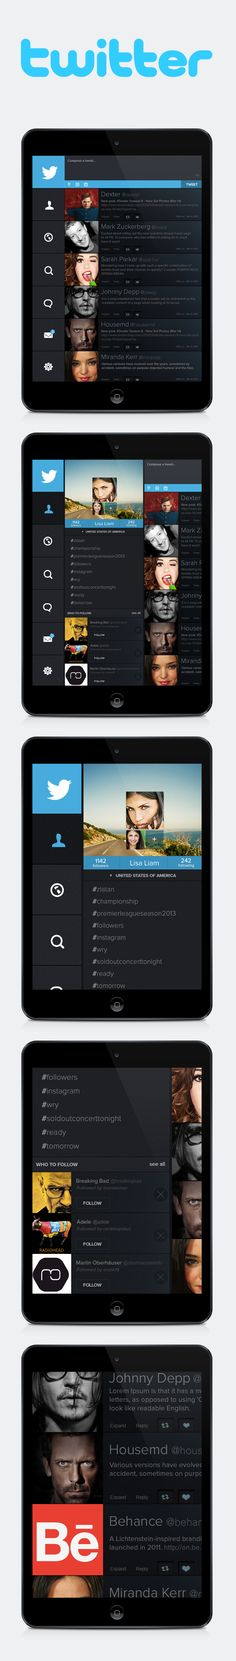 Twitter ipad edition (conception) by Enes Danis, via Behance